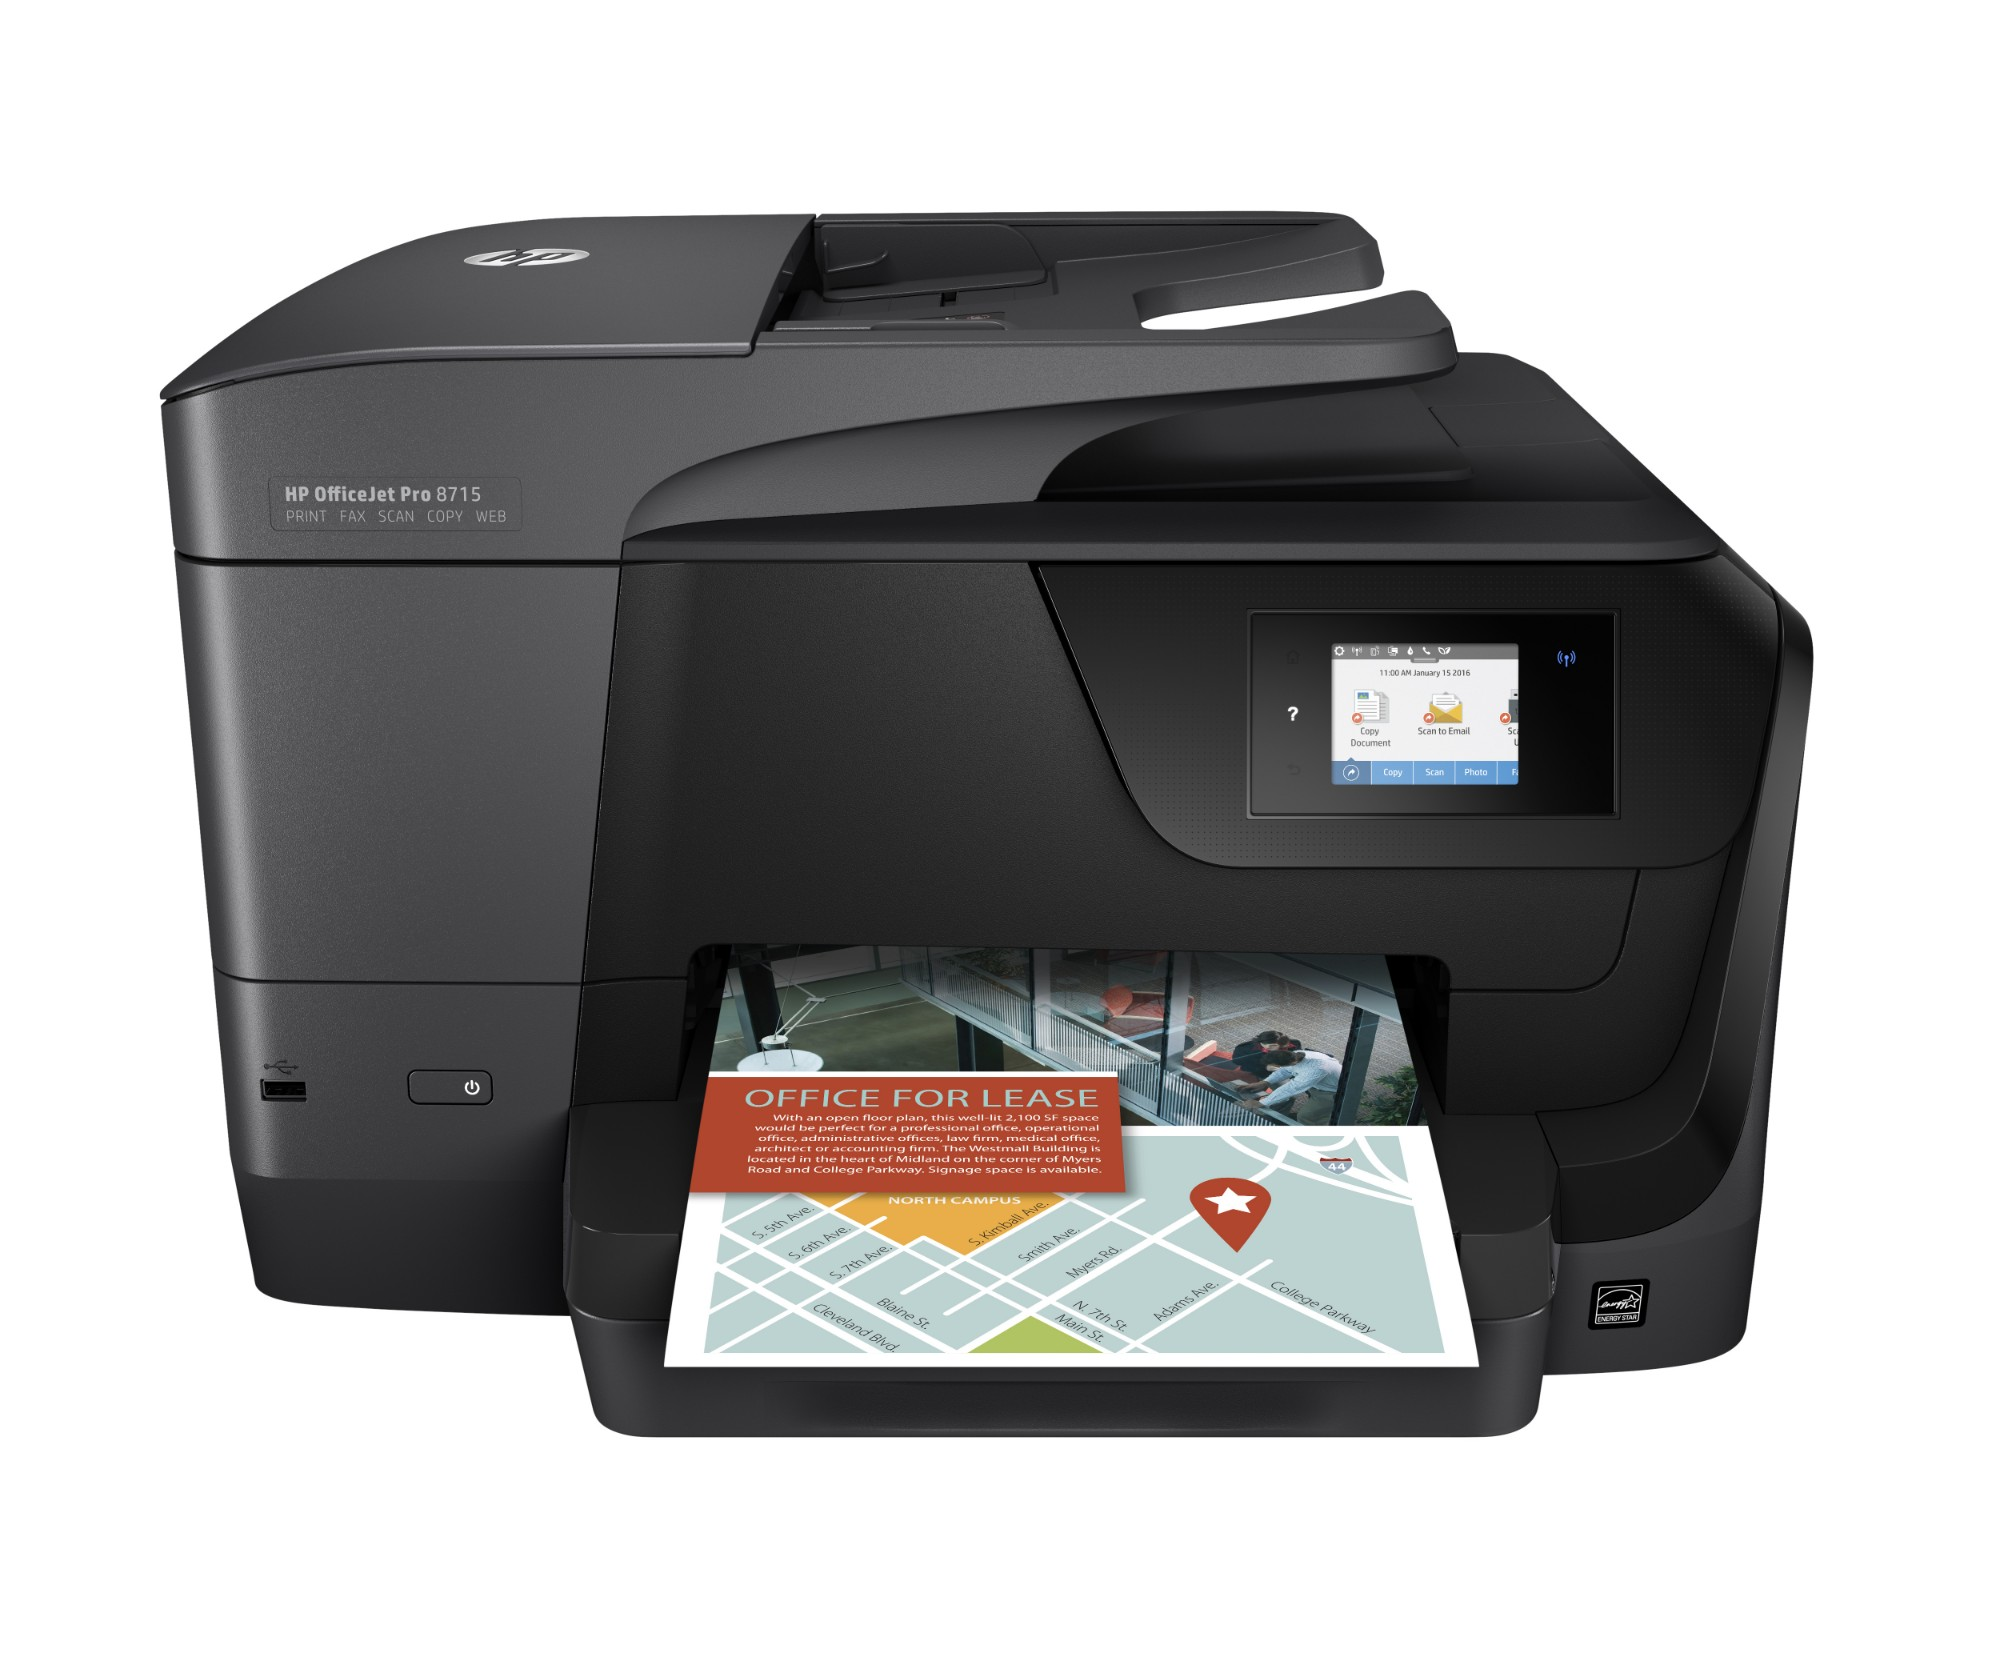 HP OfficeJet Pro 8715 All-in-One Printer